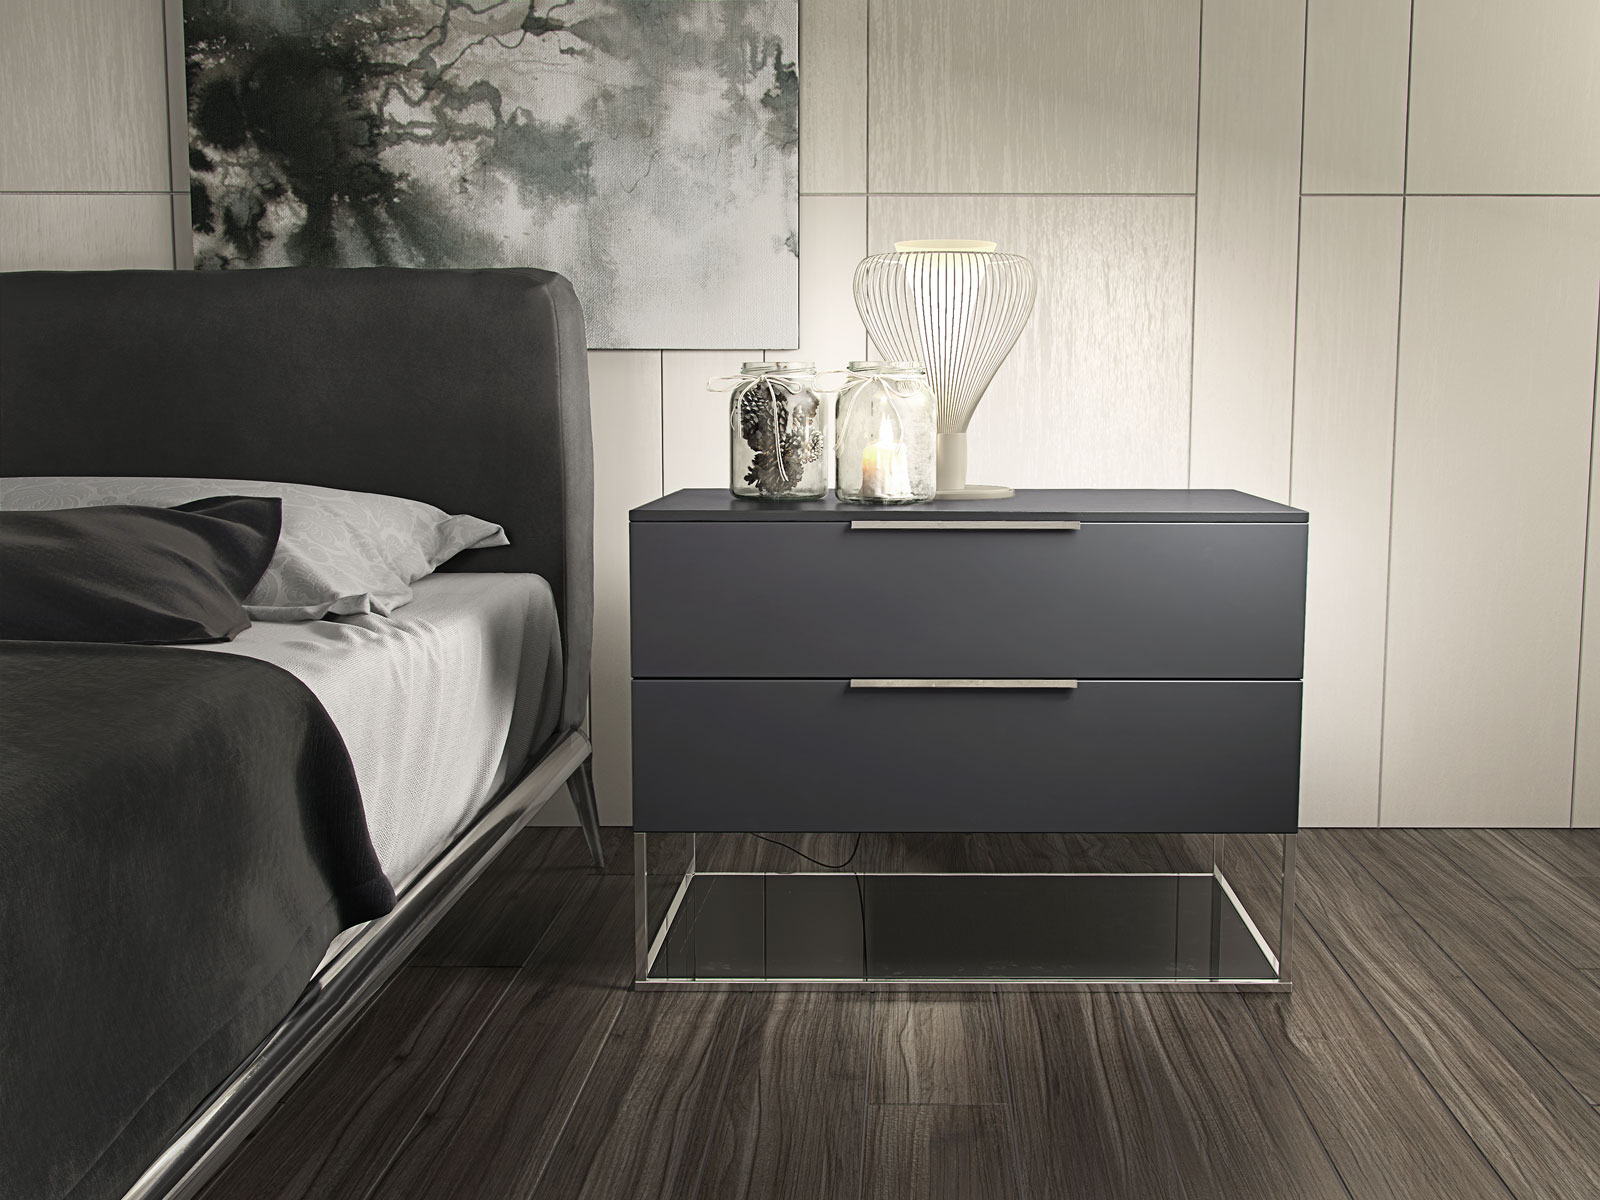 10 Modern Nightstands Designs Ideas For Your Home